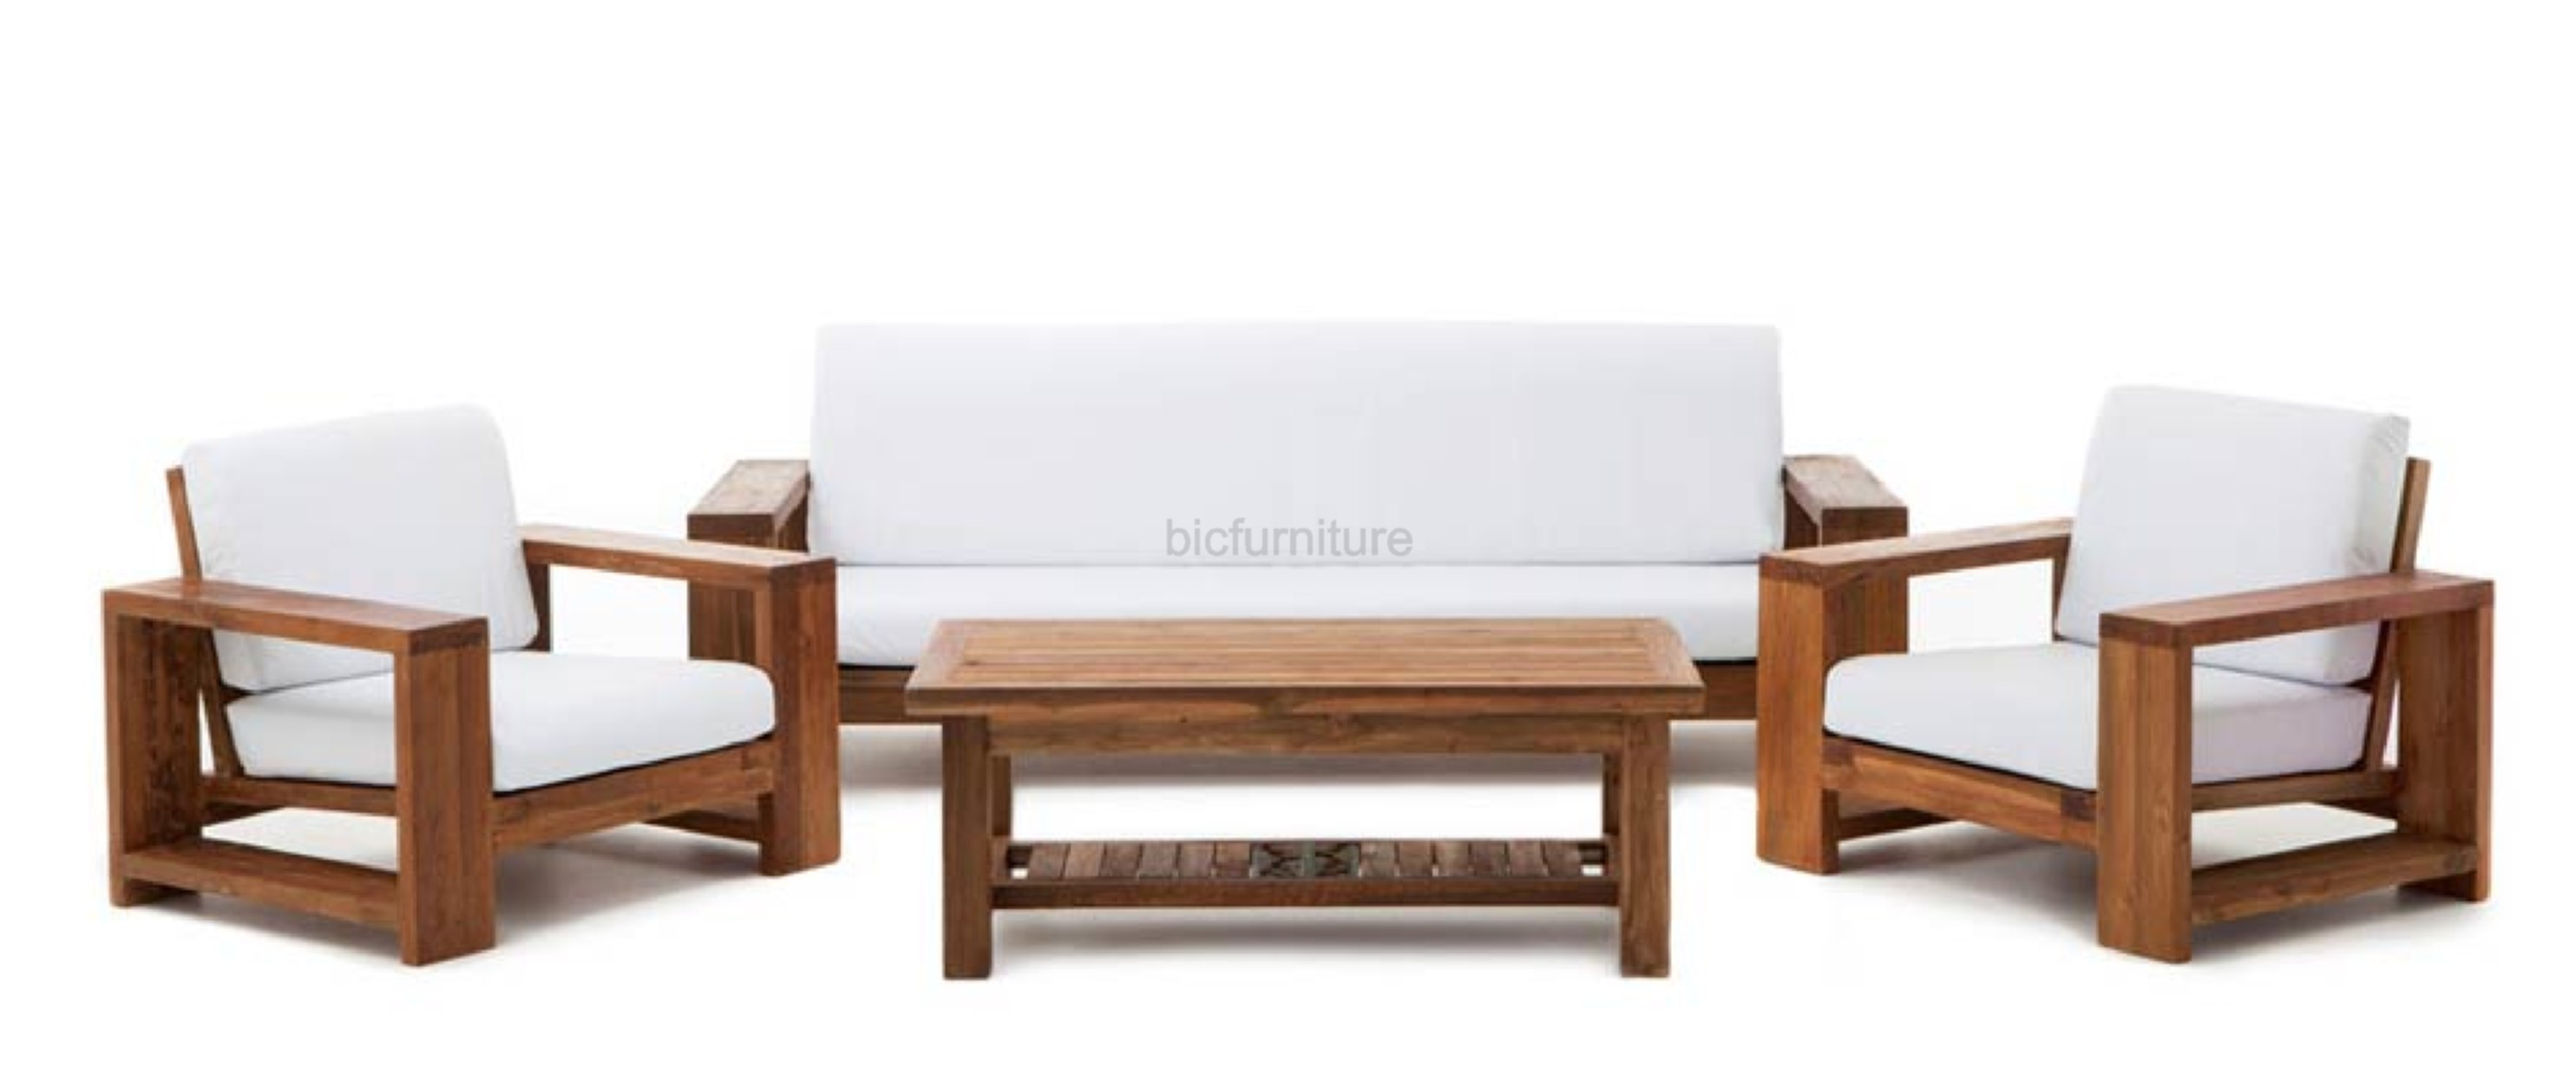 Simple 90 bedroom set furniture price in india design decoration of buildmantra online at best Home furniture online prices